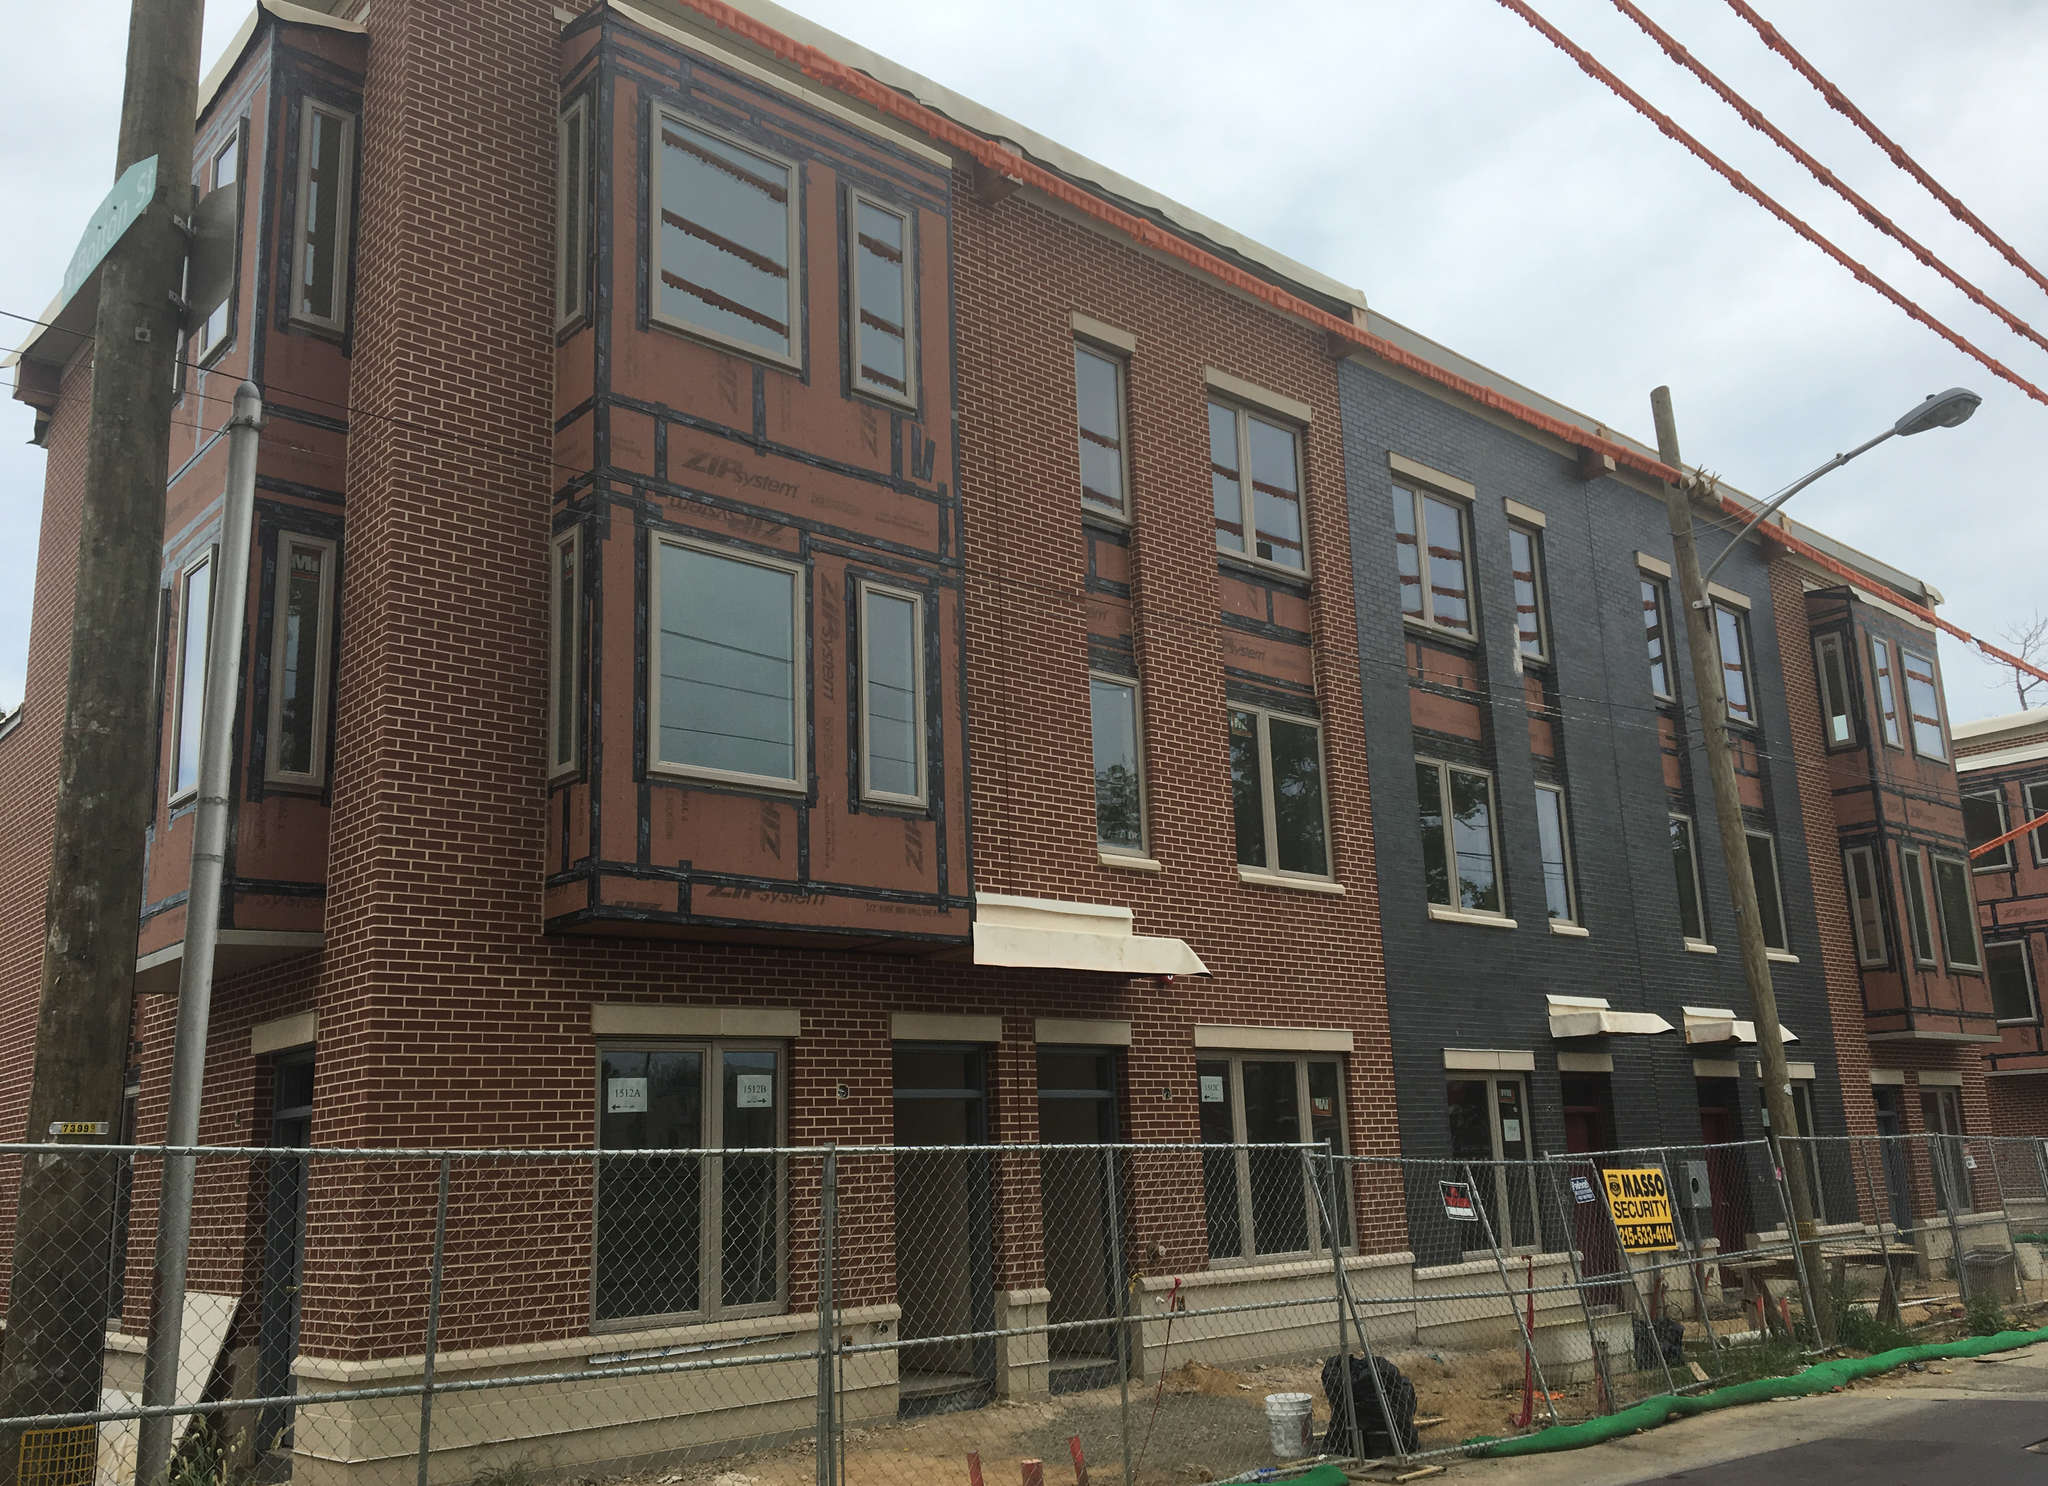 New rowhouses on the site of the former Blumberg Towers are faced in good-quality brick.